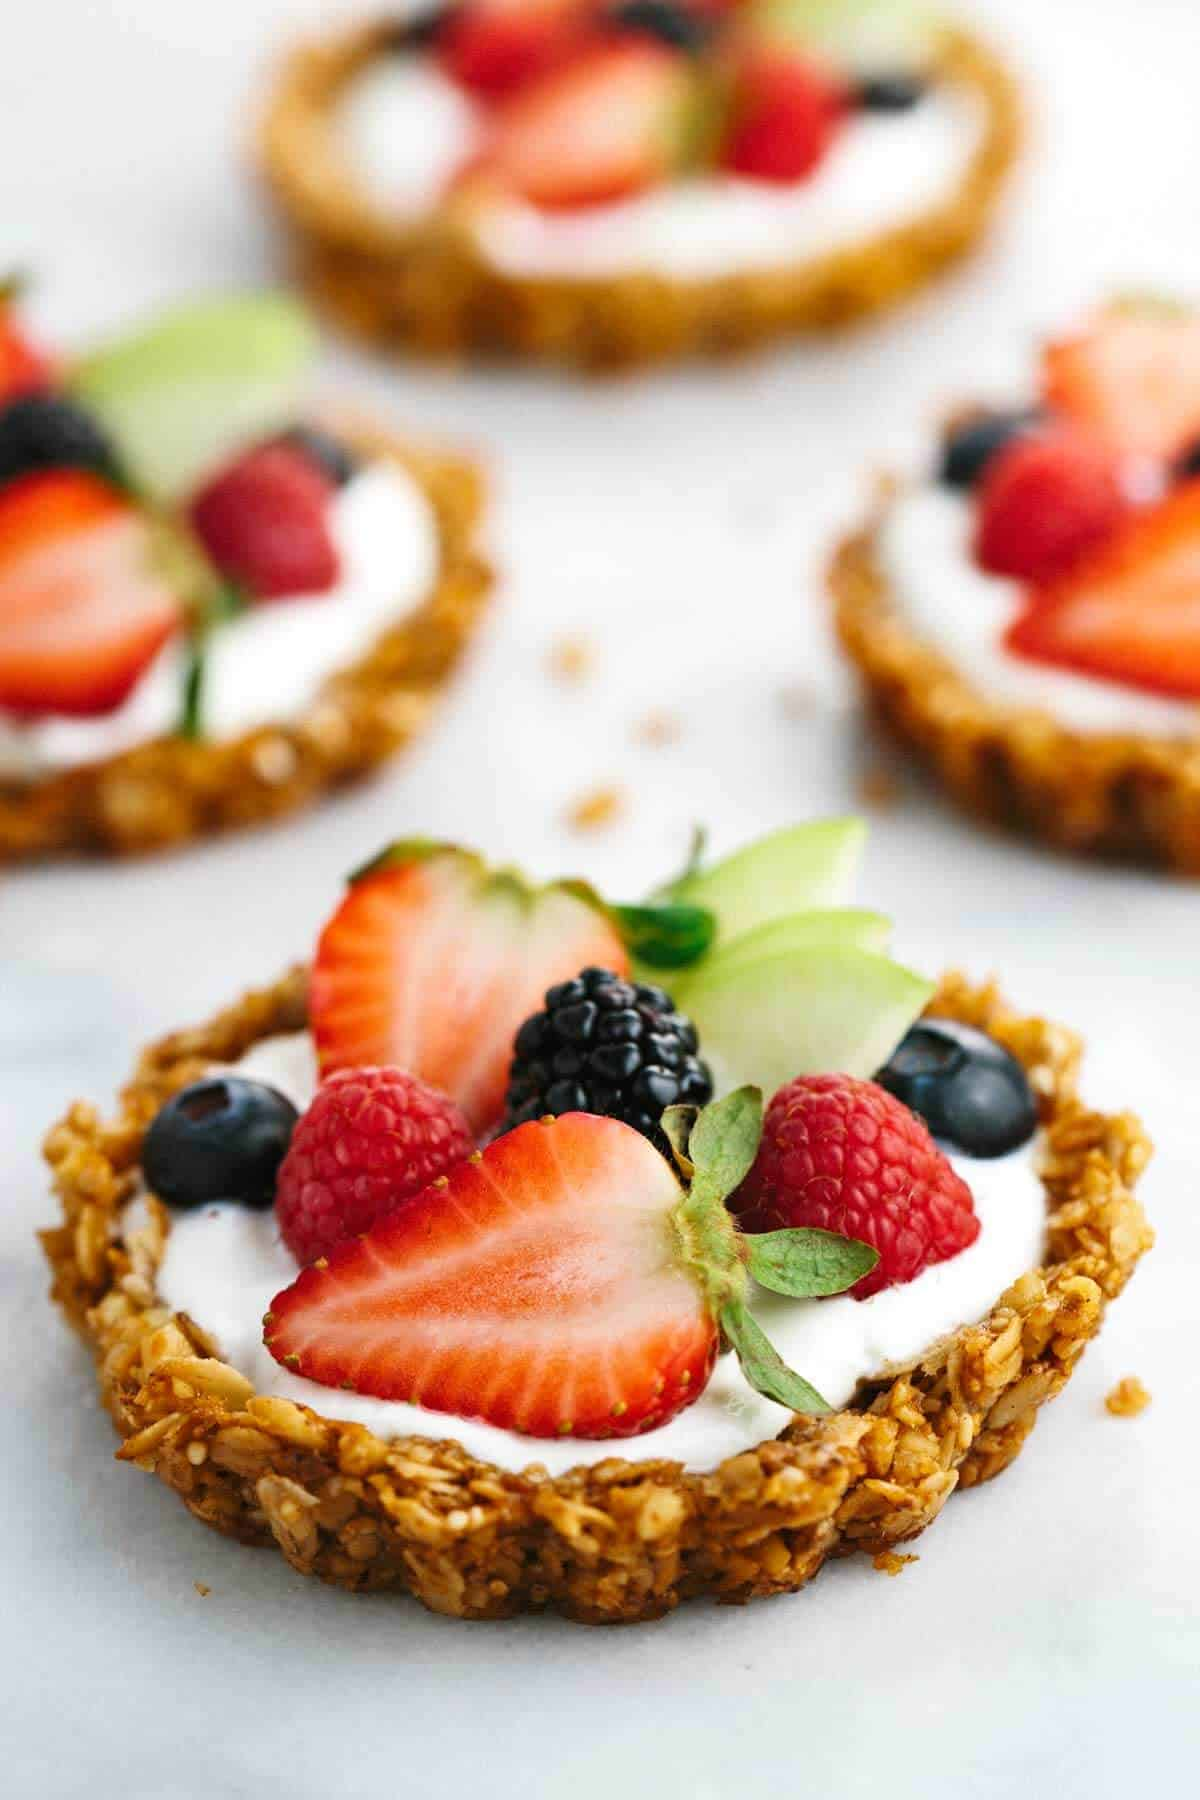 Closeup photo of Breakfast Granola Fruit Tart on a white background.